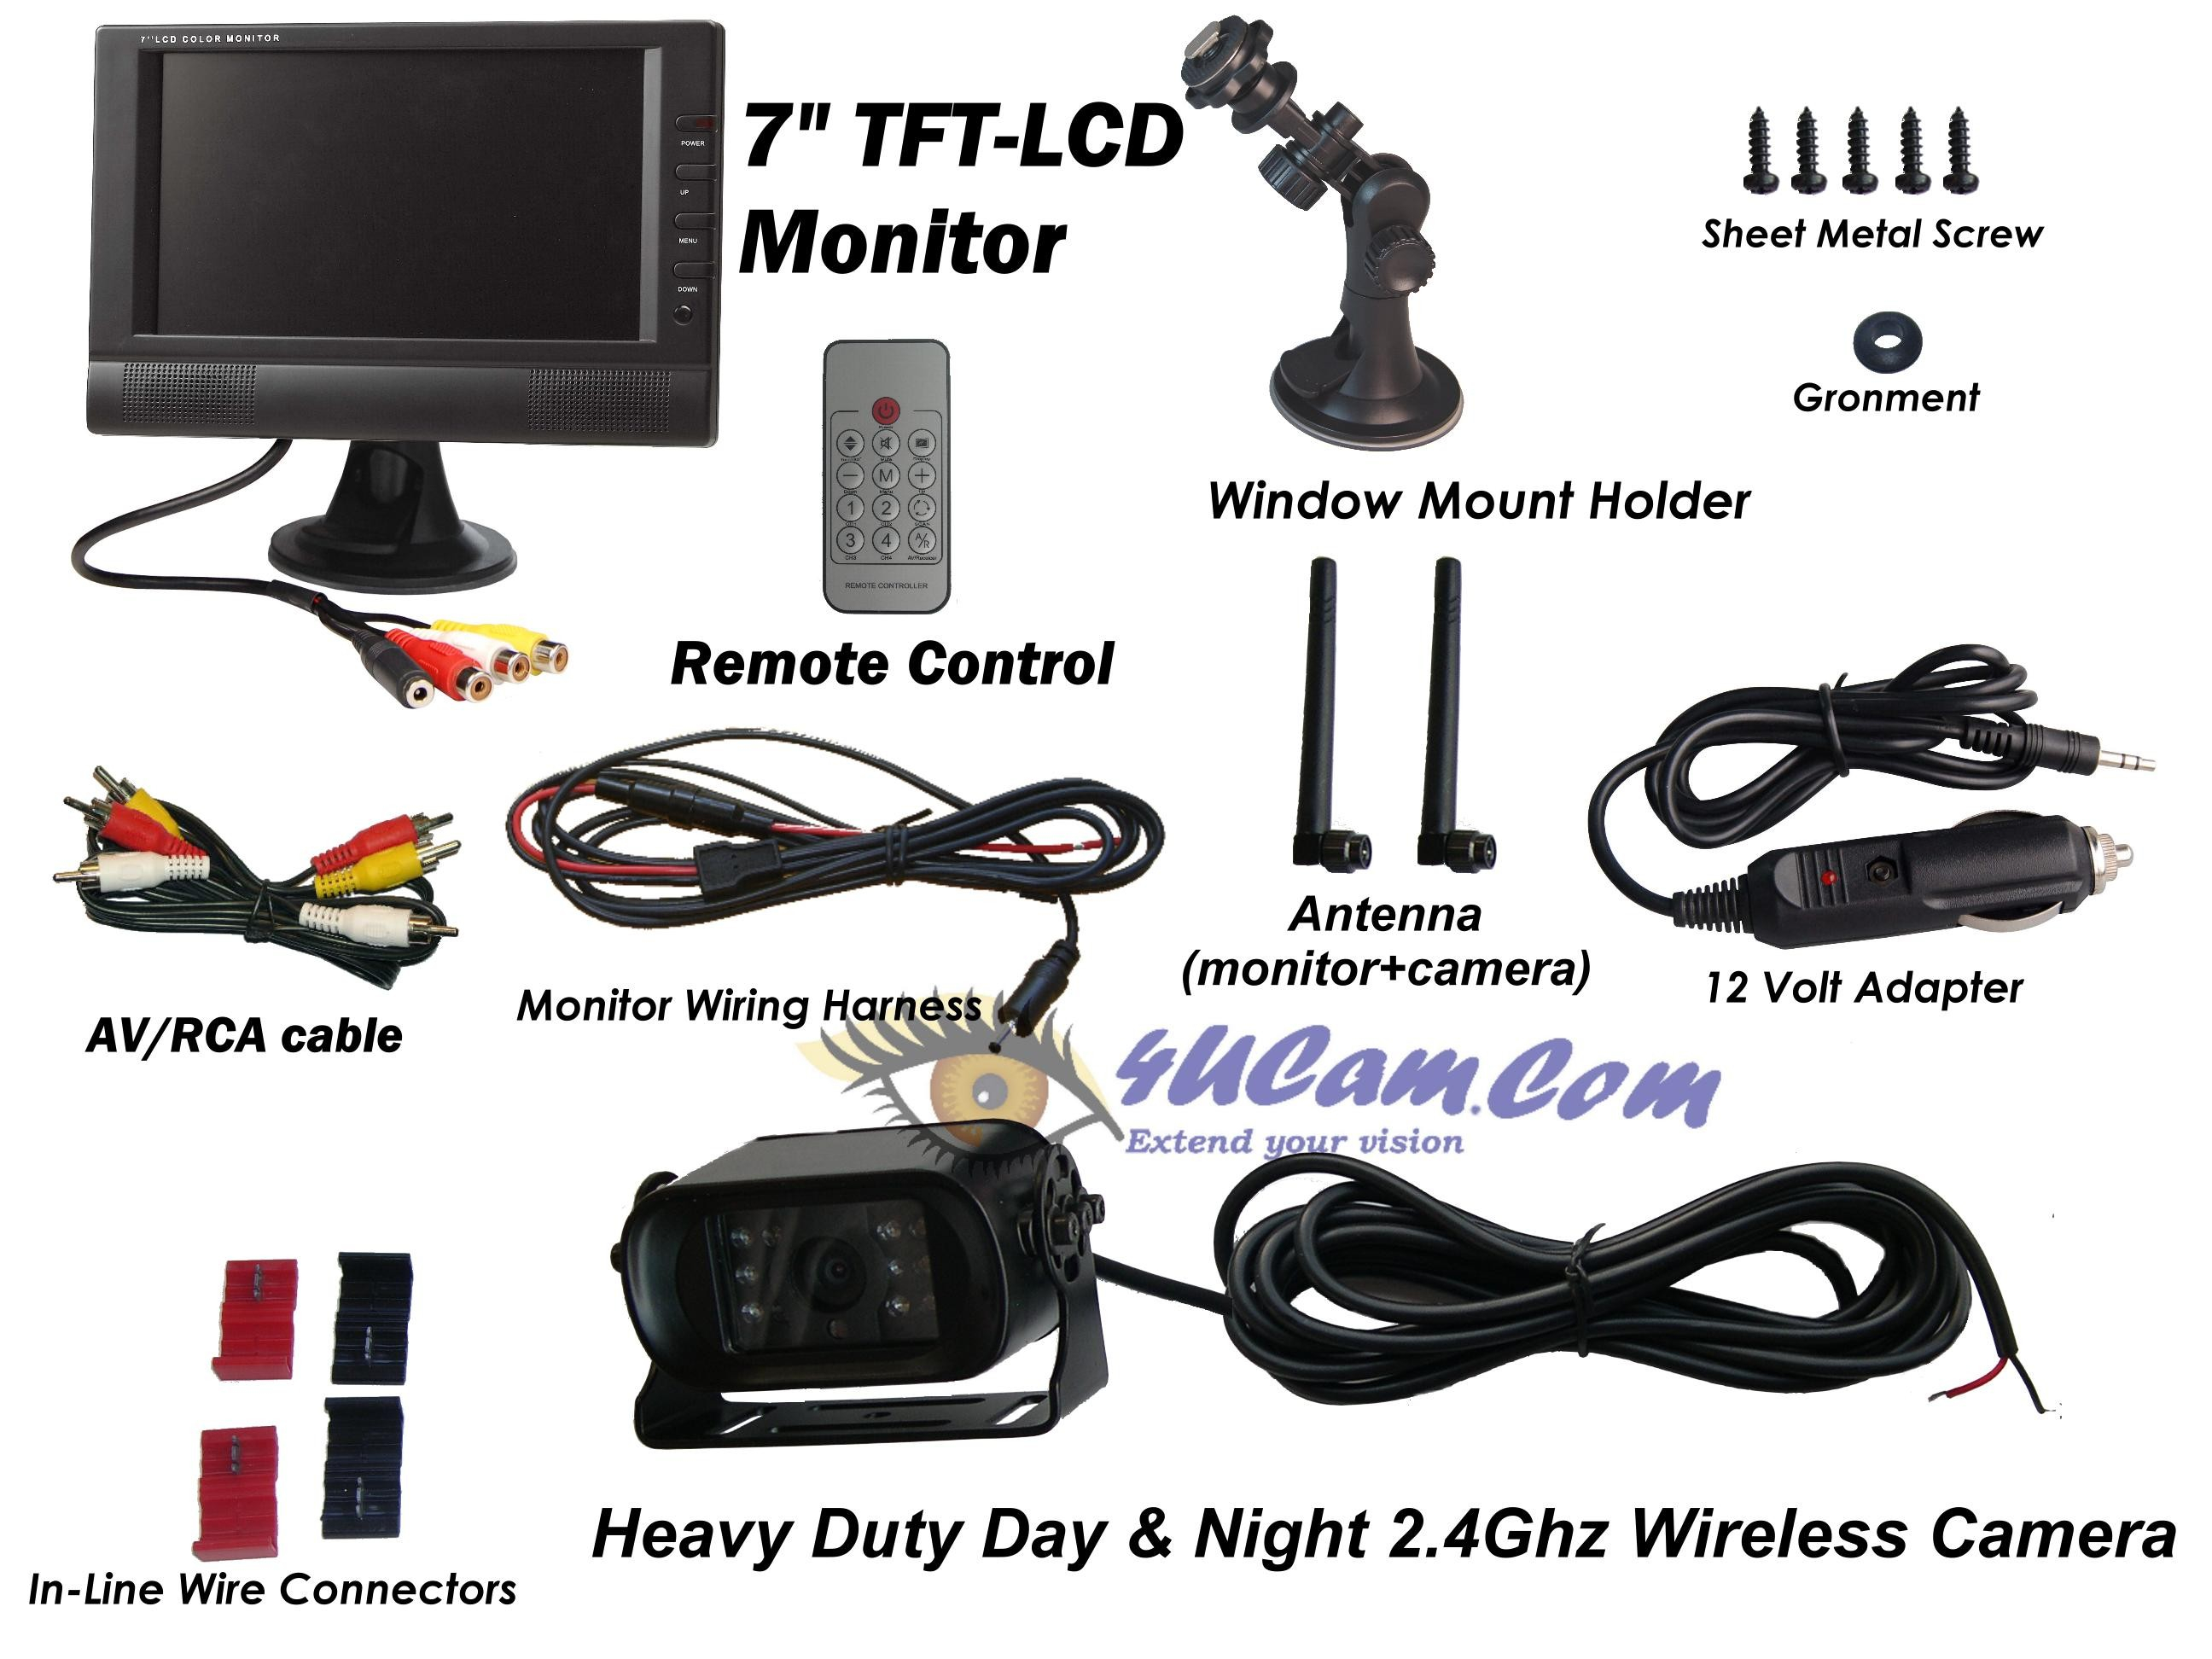 pillow tft lcd color monitor wiring diagram gallery. Black Bedroom Furniture Sets. Home Design Ideas